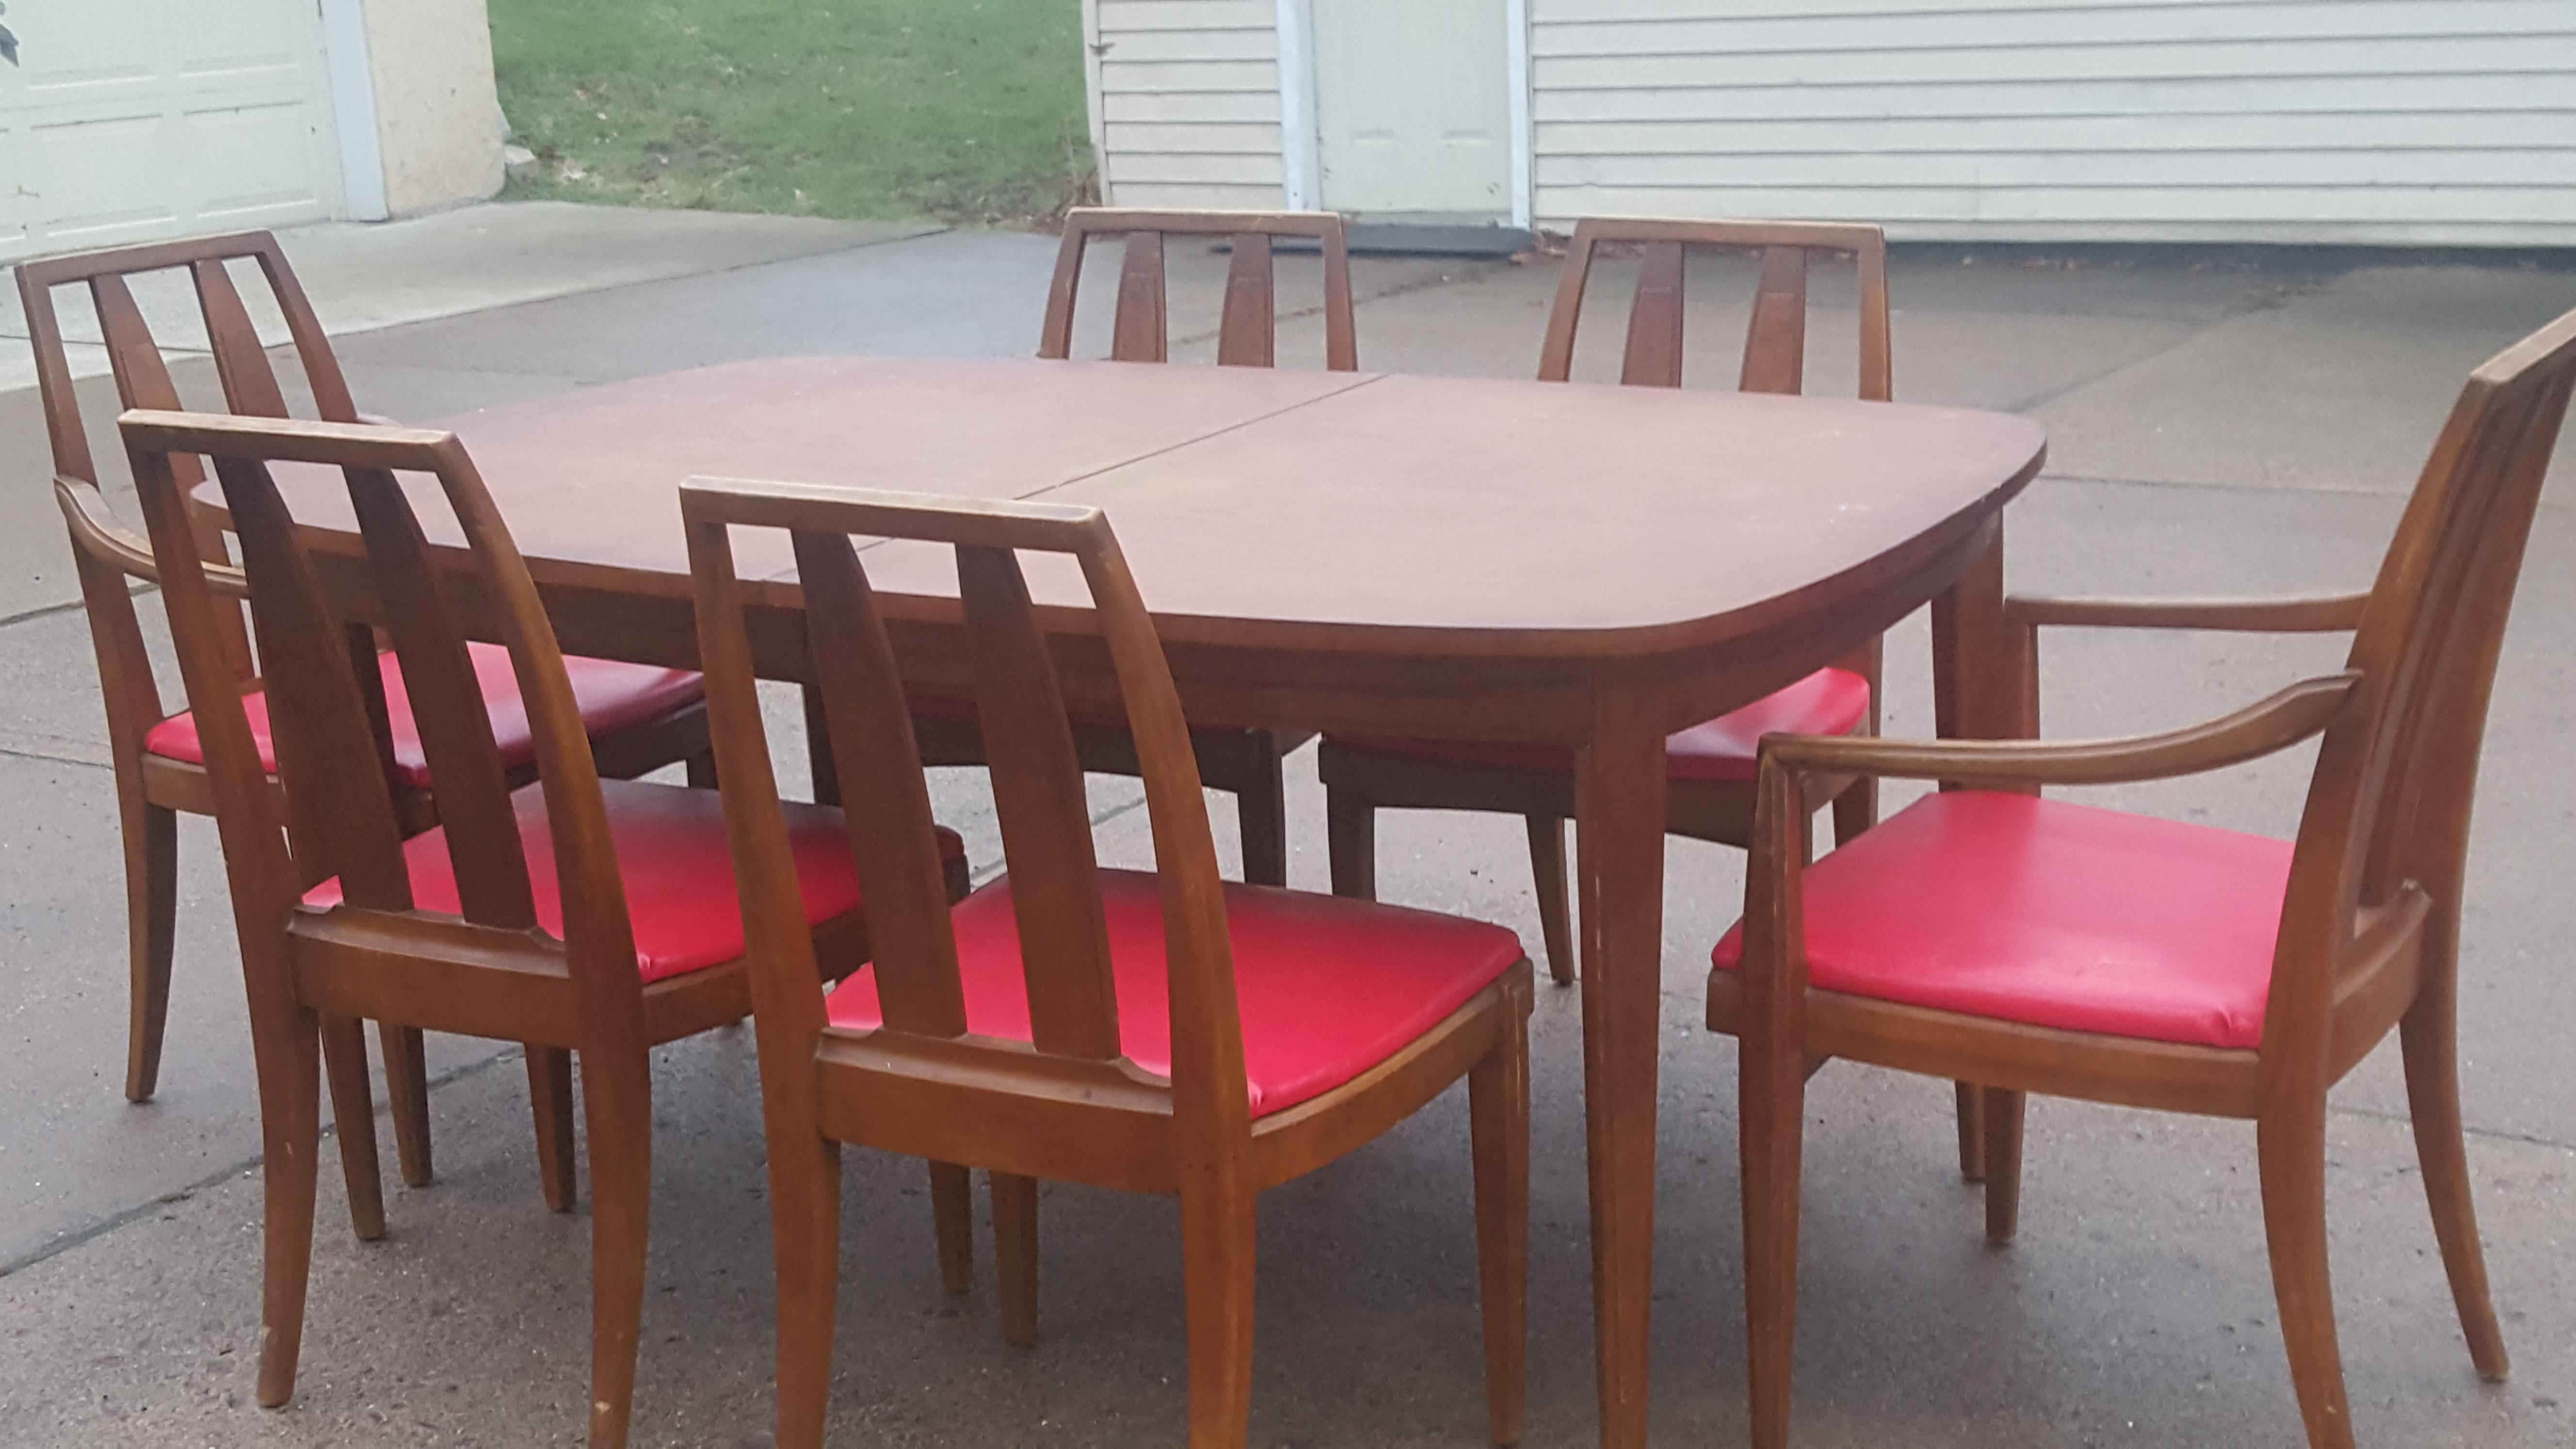 J. B. Van. Scivr Co. Table and chairs appraisal